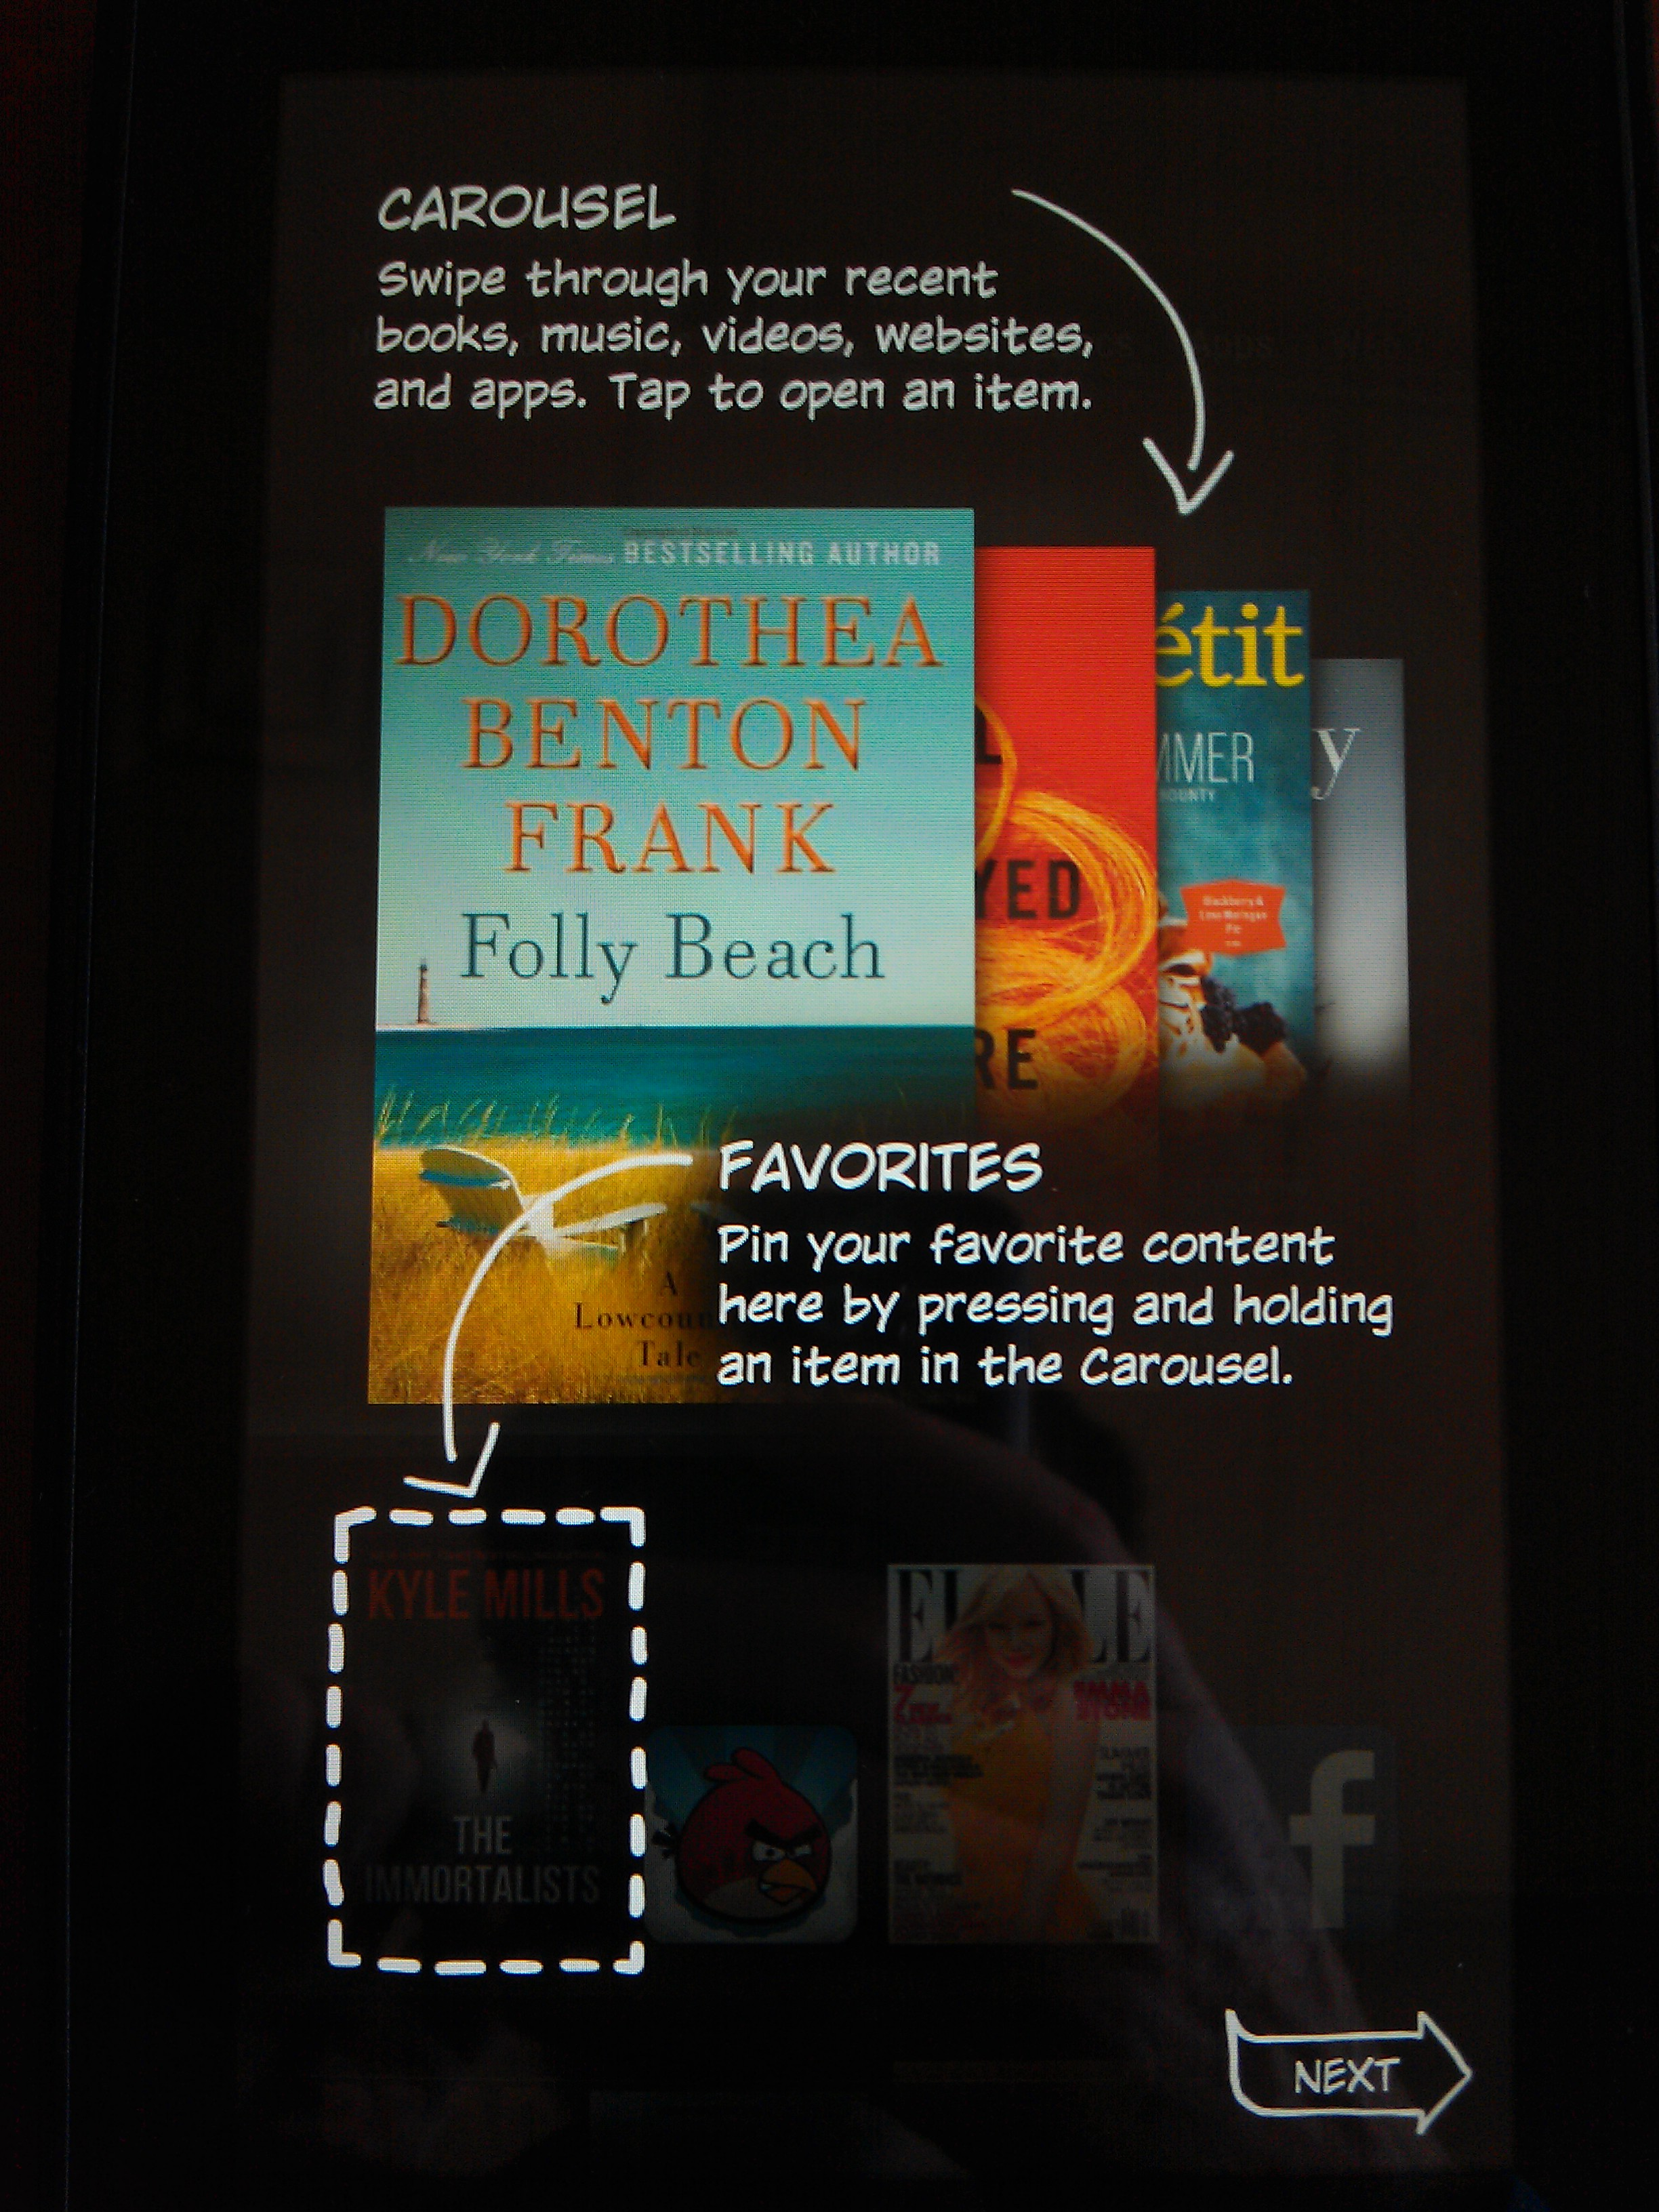 Kindle Fire Intro Screen 2